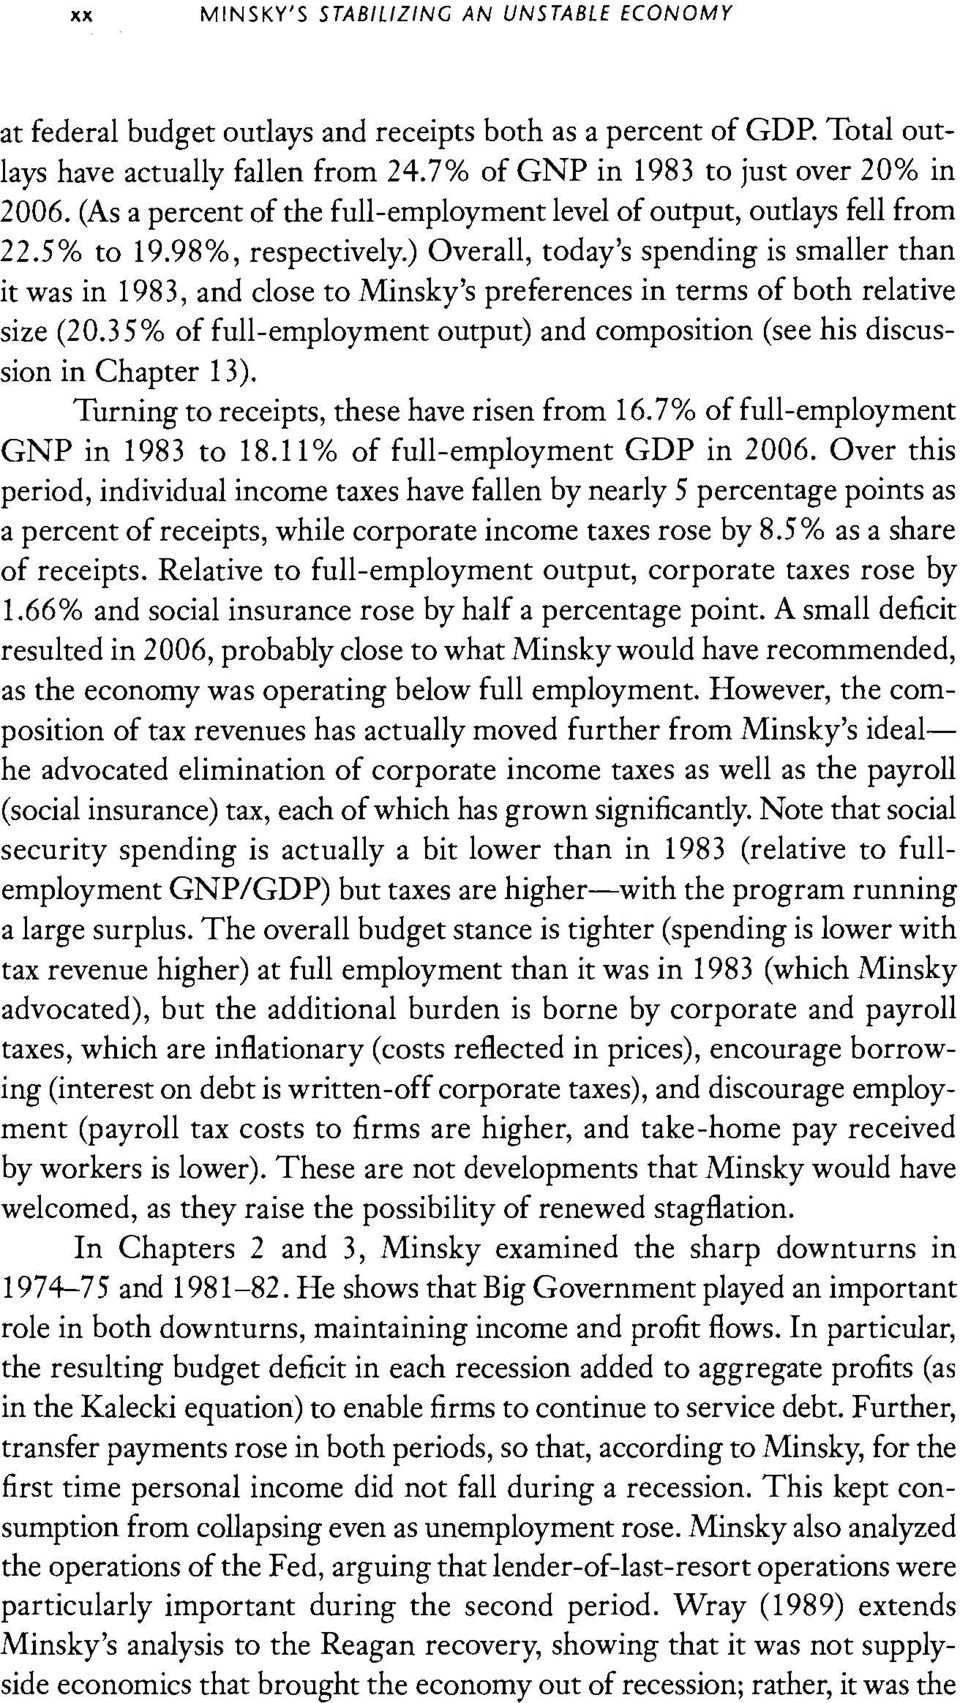 ) Overall, today's spending is smaller than it was in 1983, and close to Minsky's preferences in terms of both relative size (20.